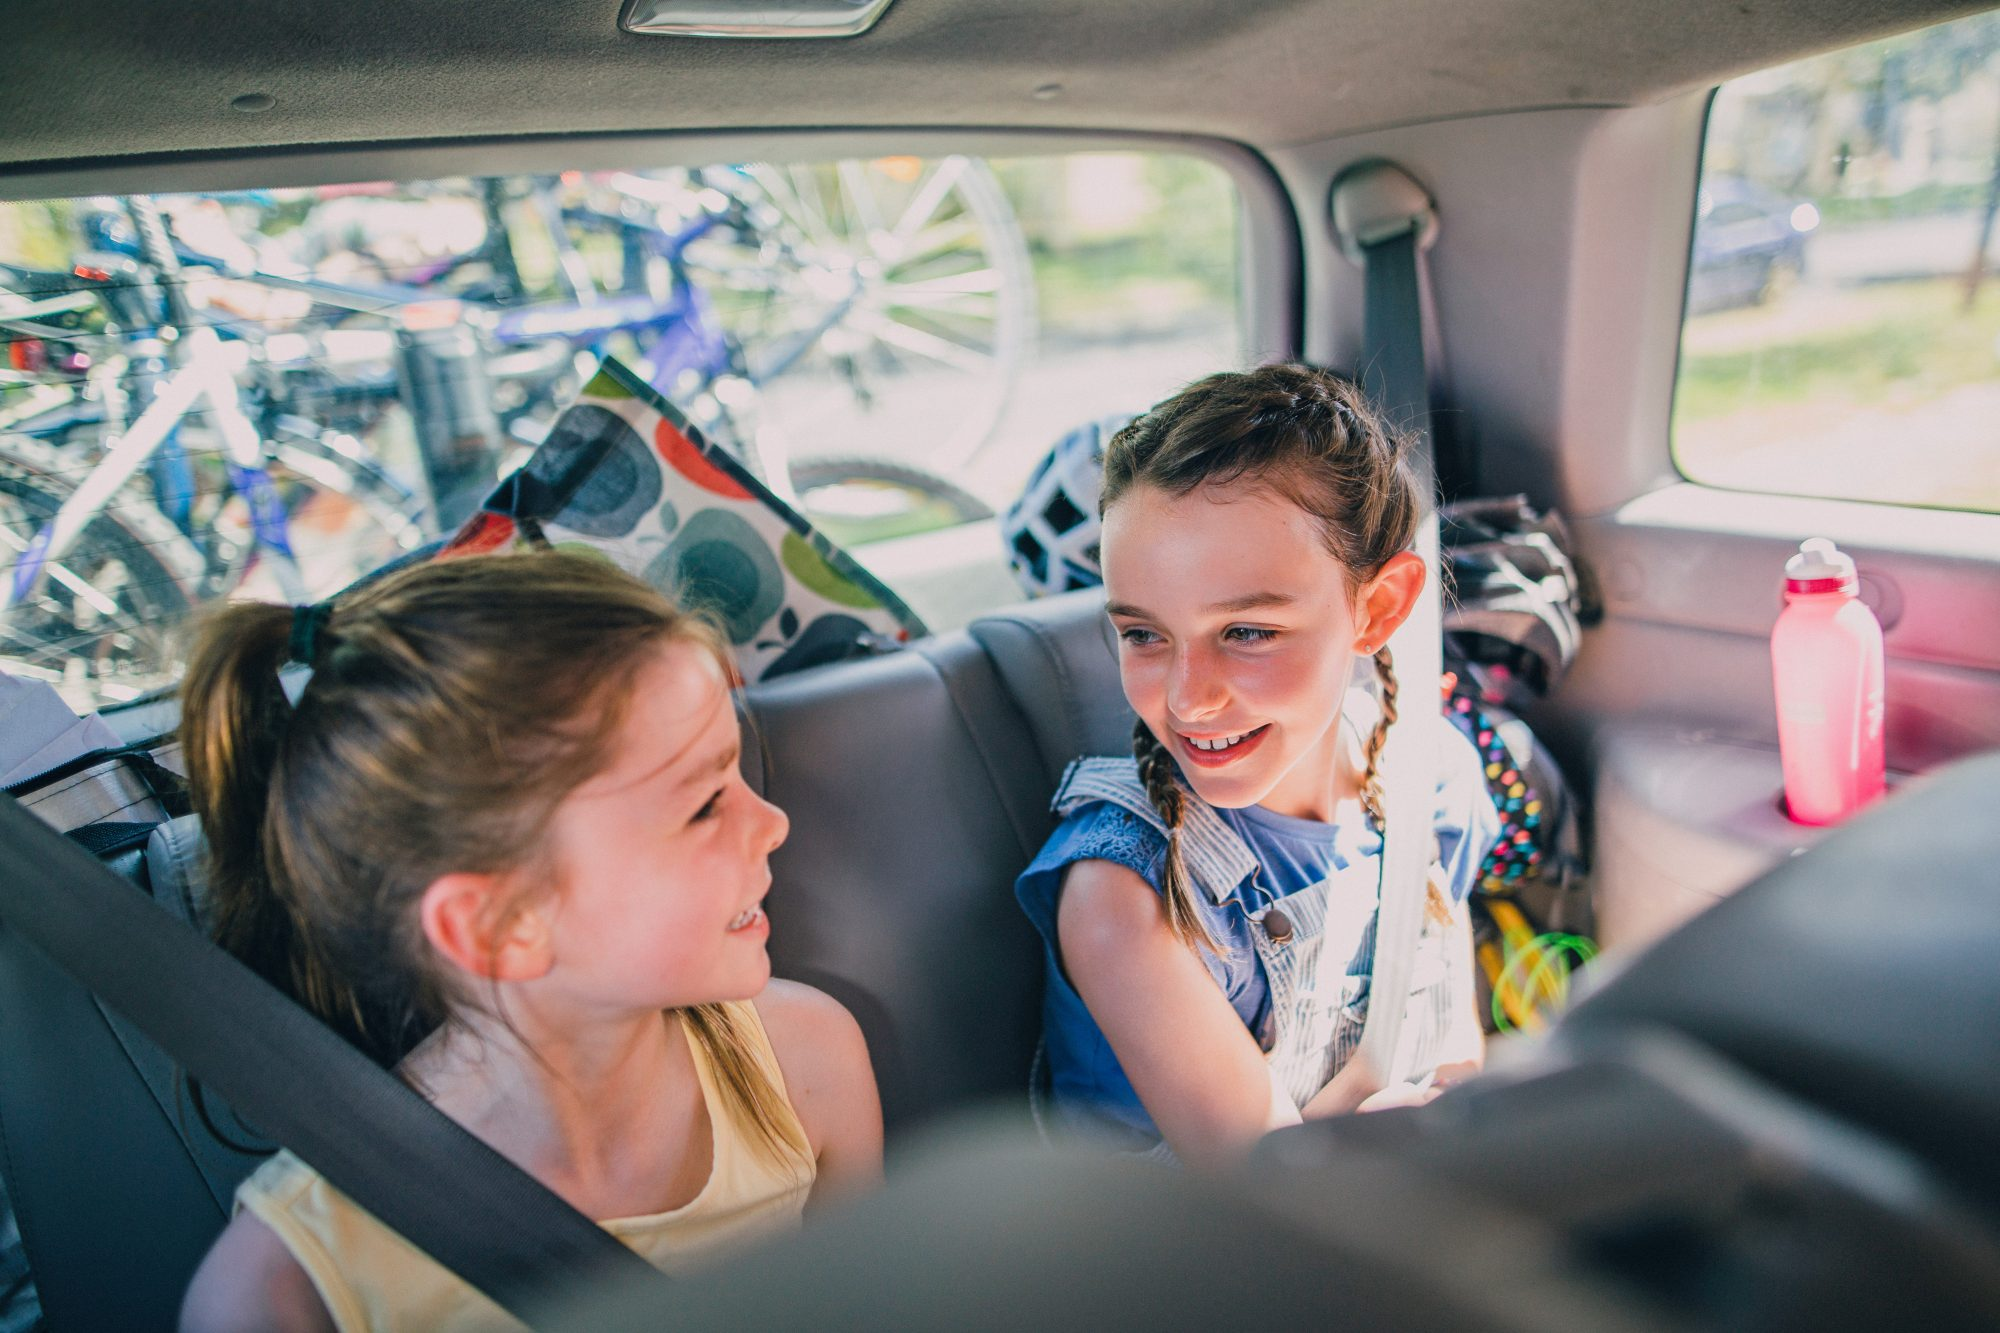 An image of two sisters sitting in a car on a road trip.